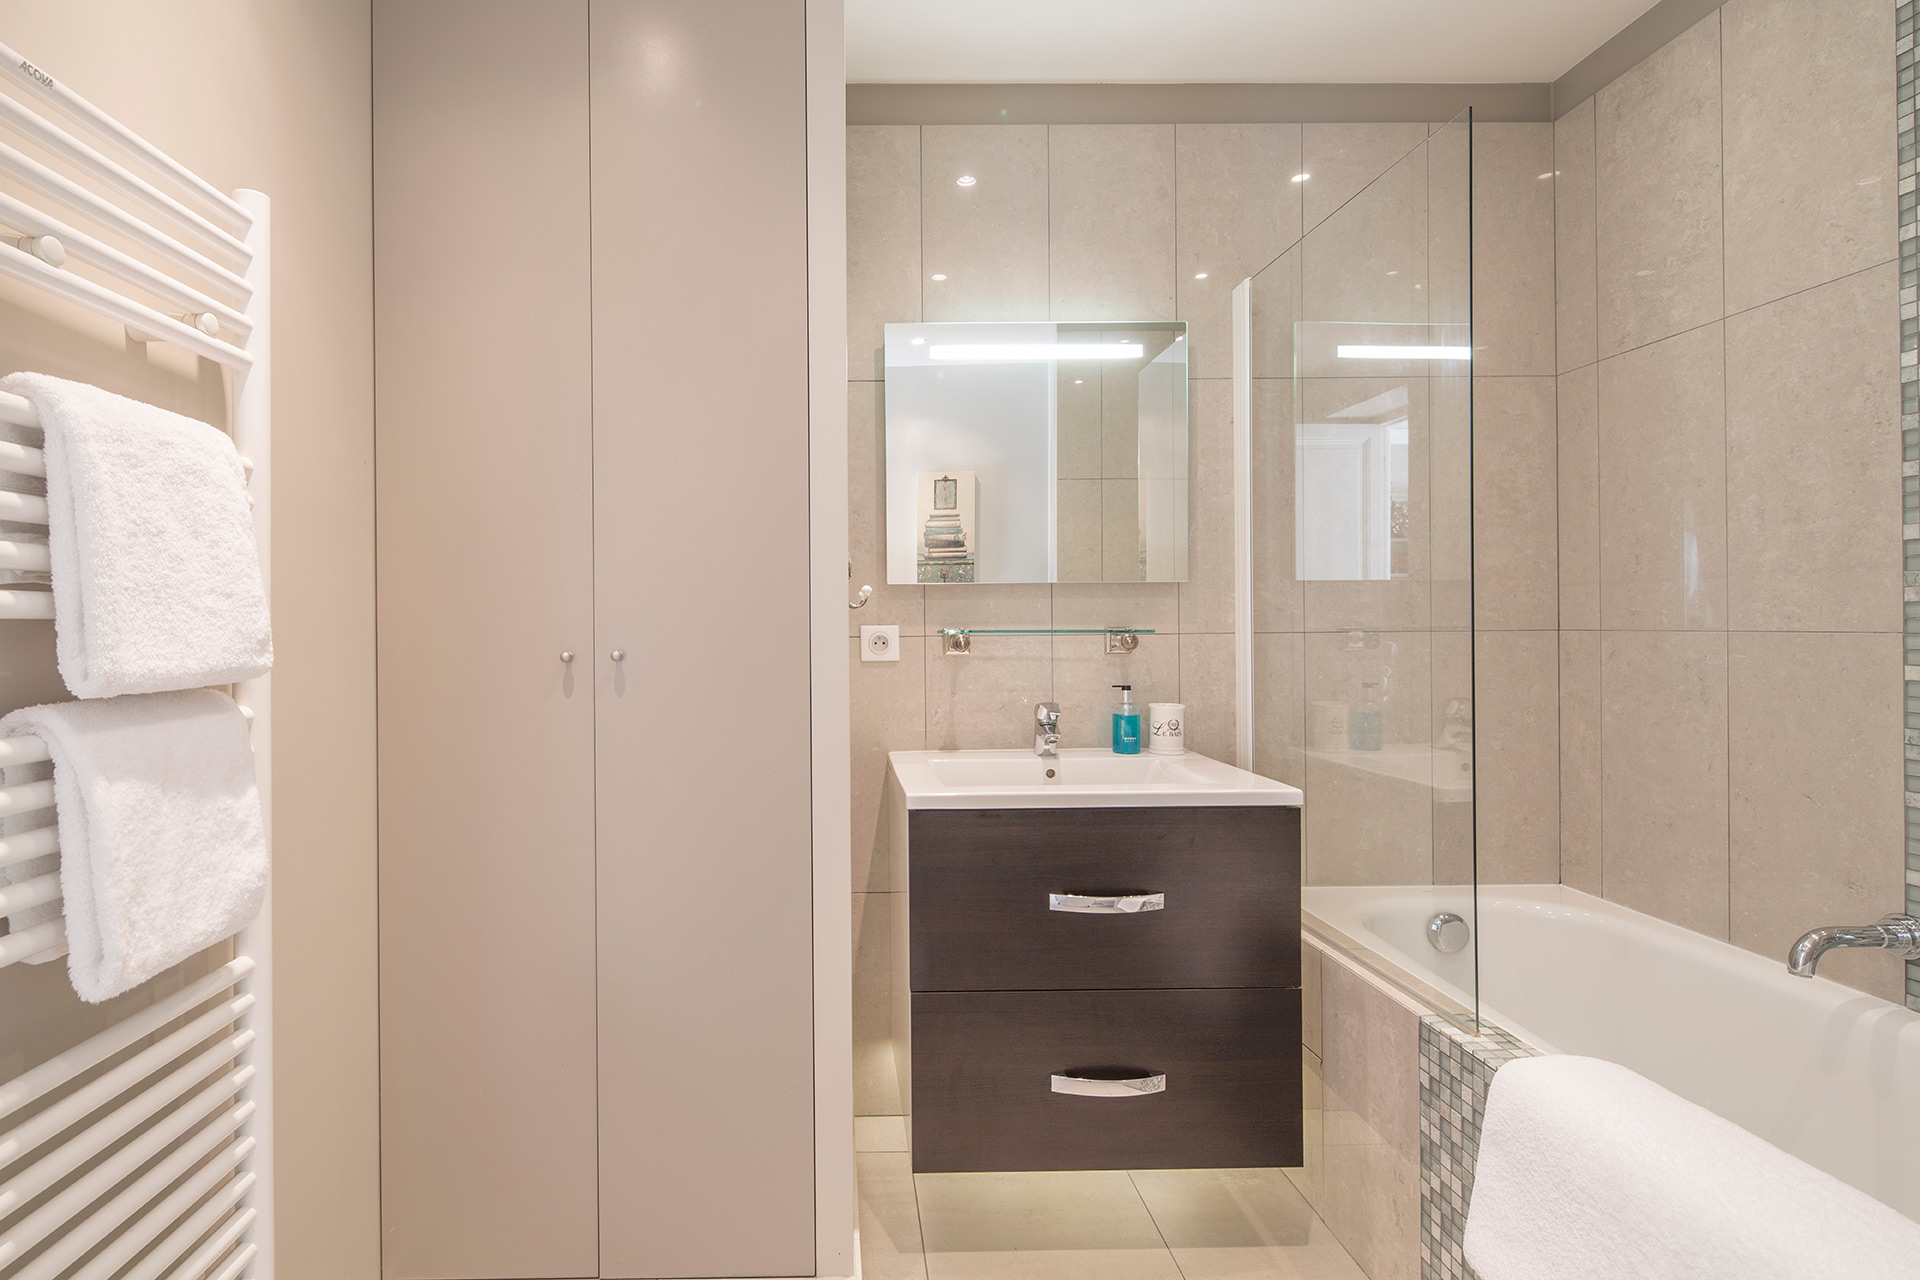 En suite bathroom of the Beaujolais vacation rental offered by Paris Perfect